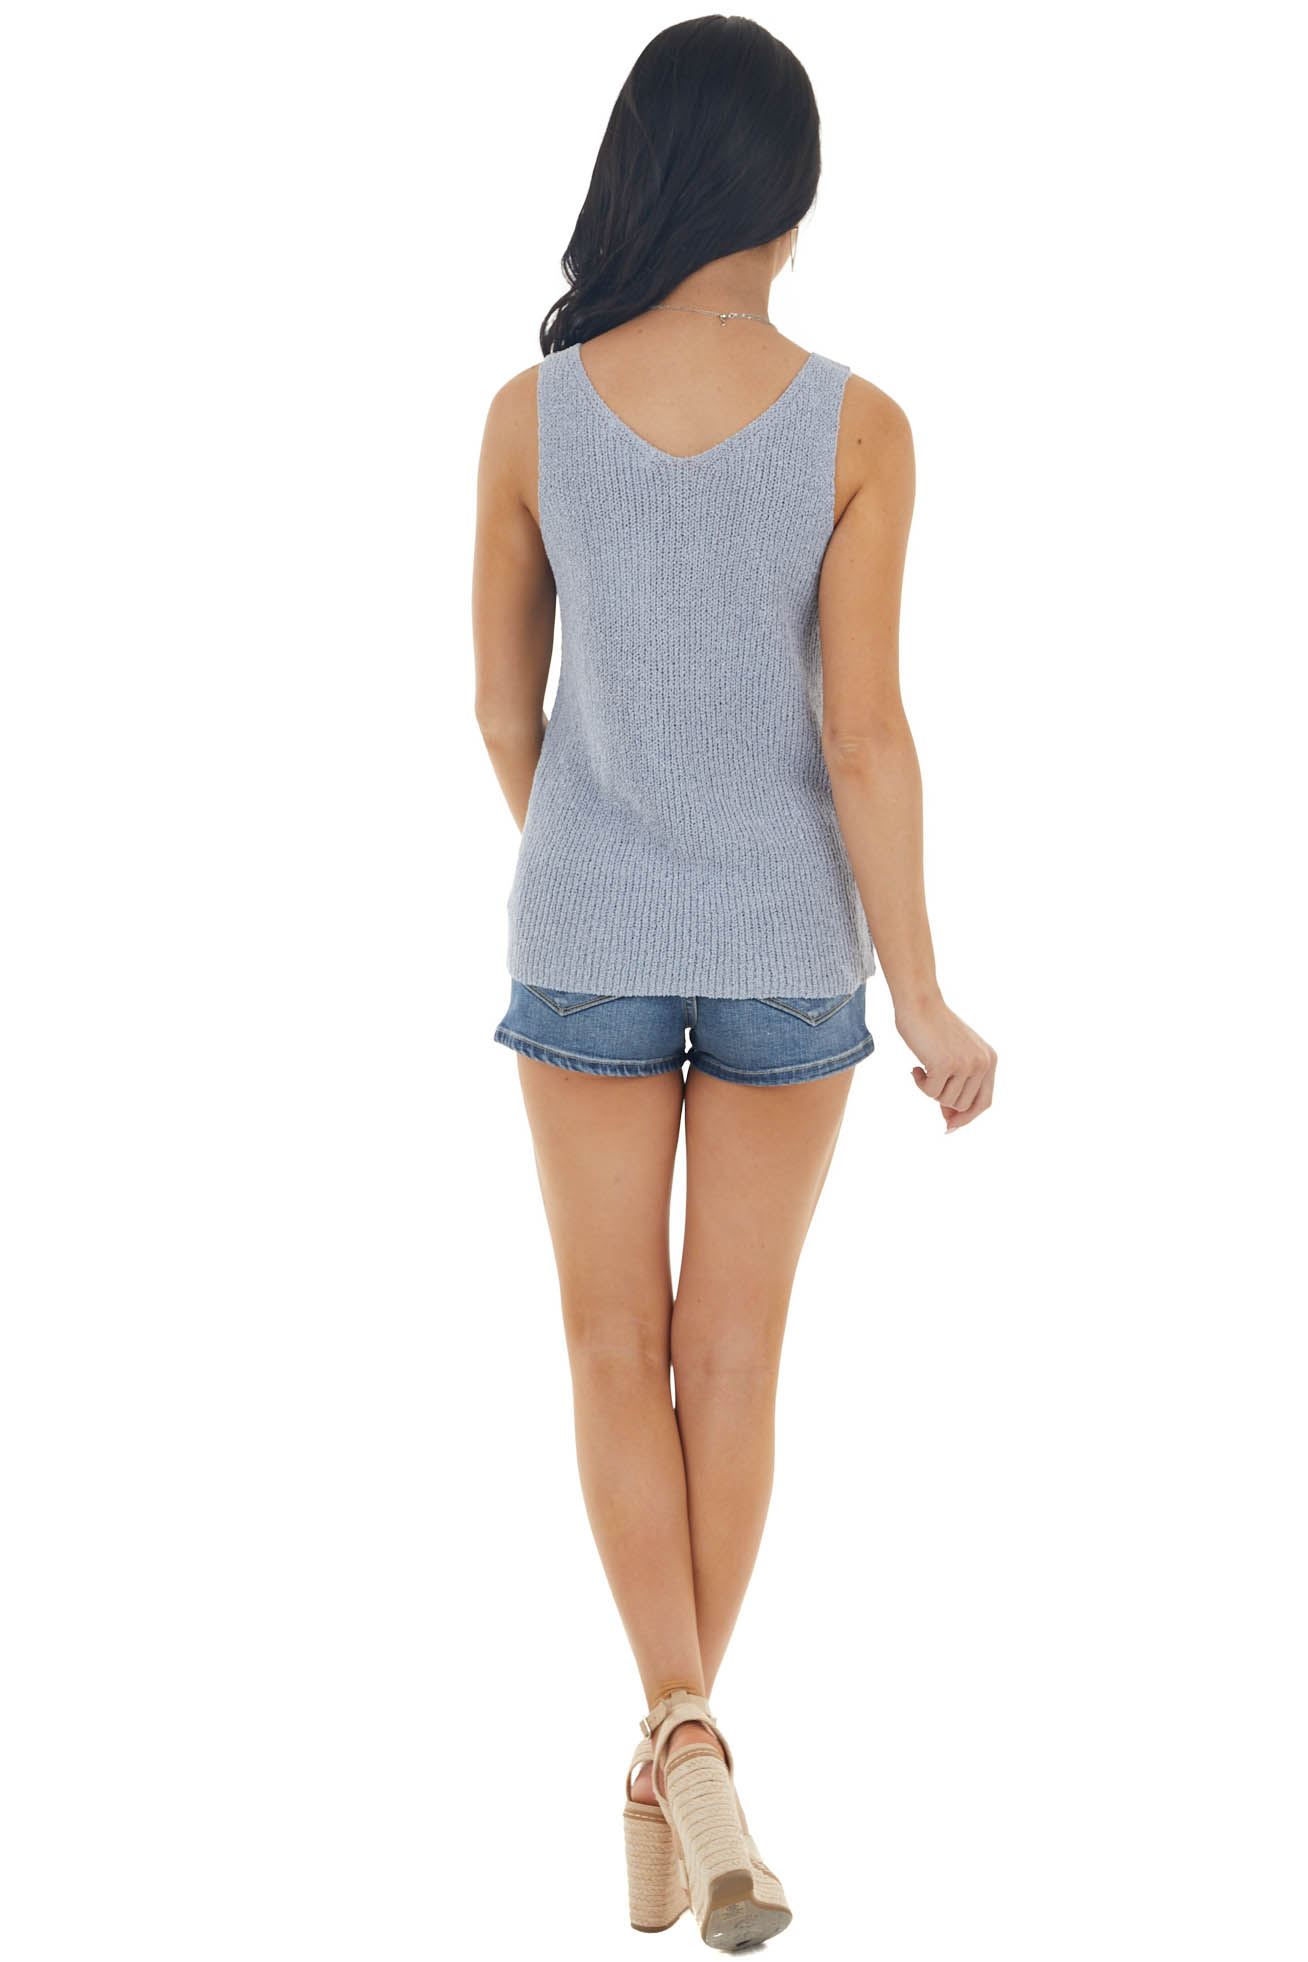 Powder Blue Sleeveless Loose Knit Tank Top with V Neckline